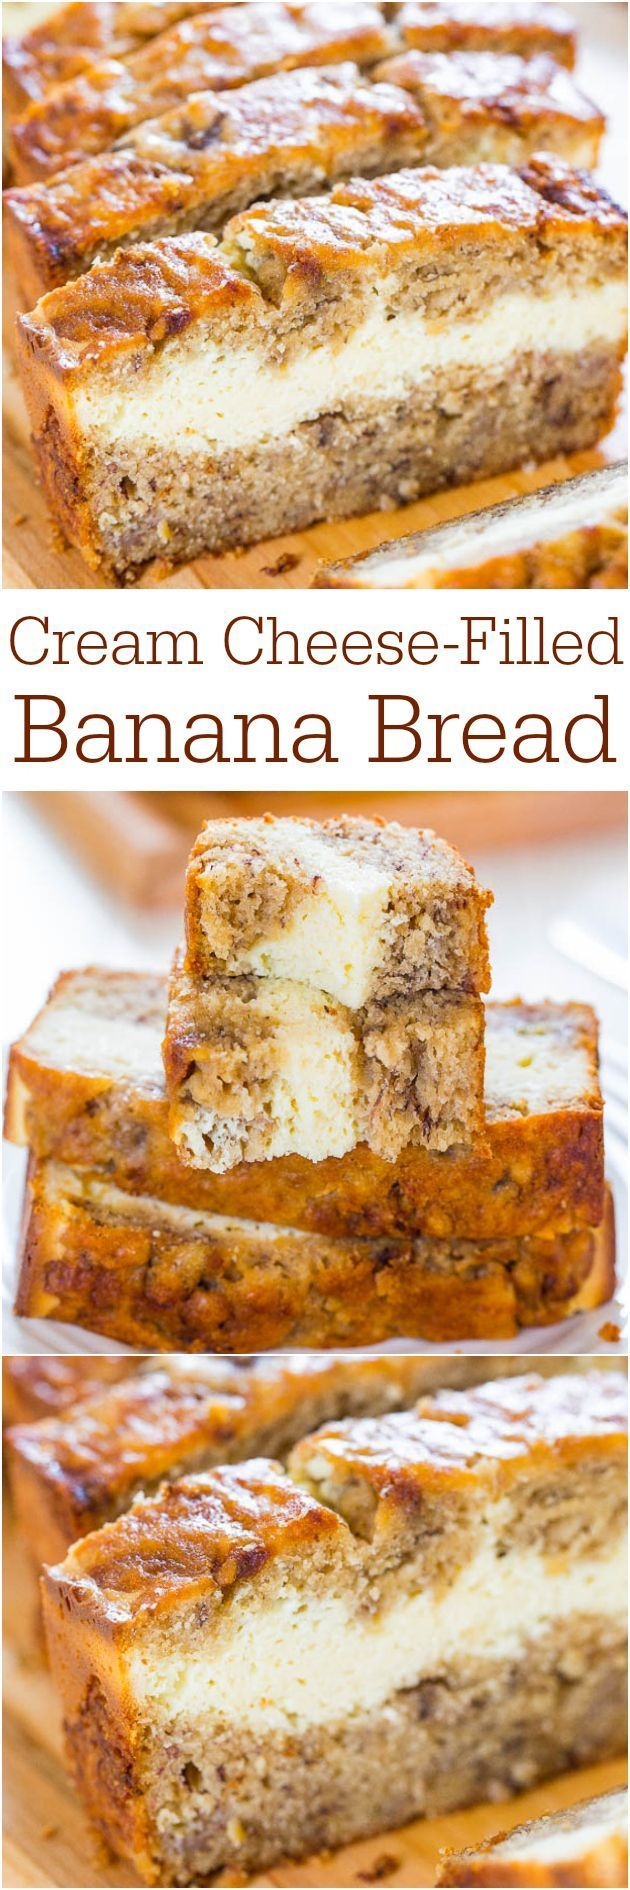 The 37 Most Pinned Breakfast Recipes - Best Recipes on Pinterest - Page 2 of 3